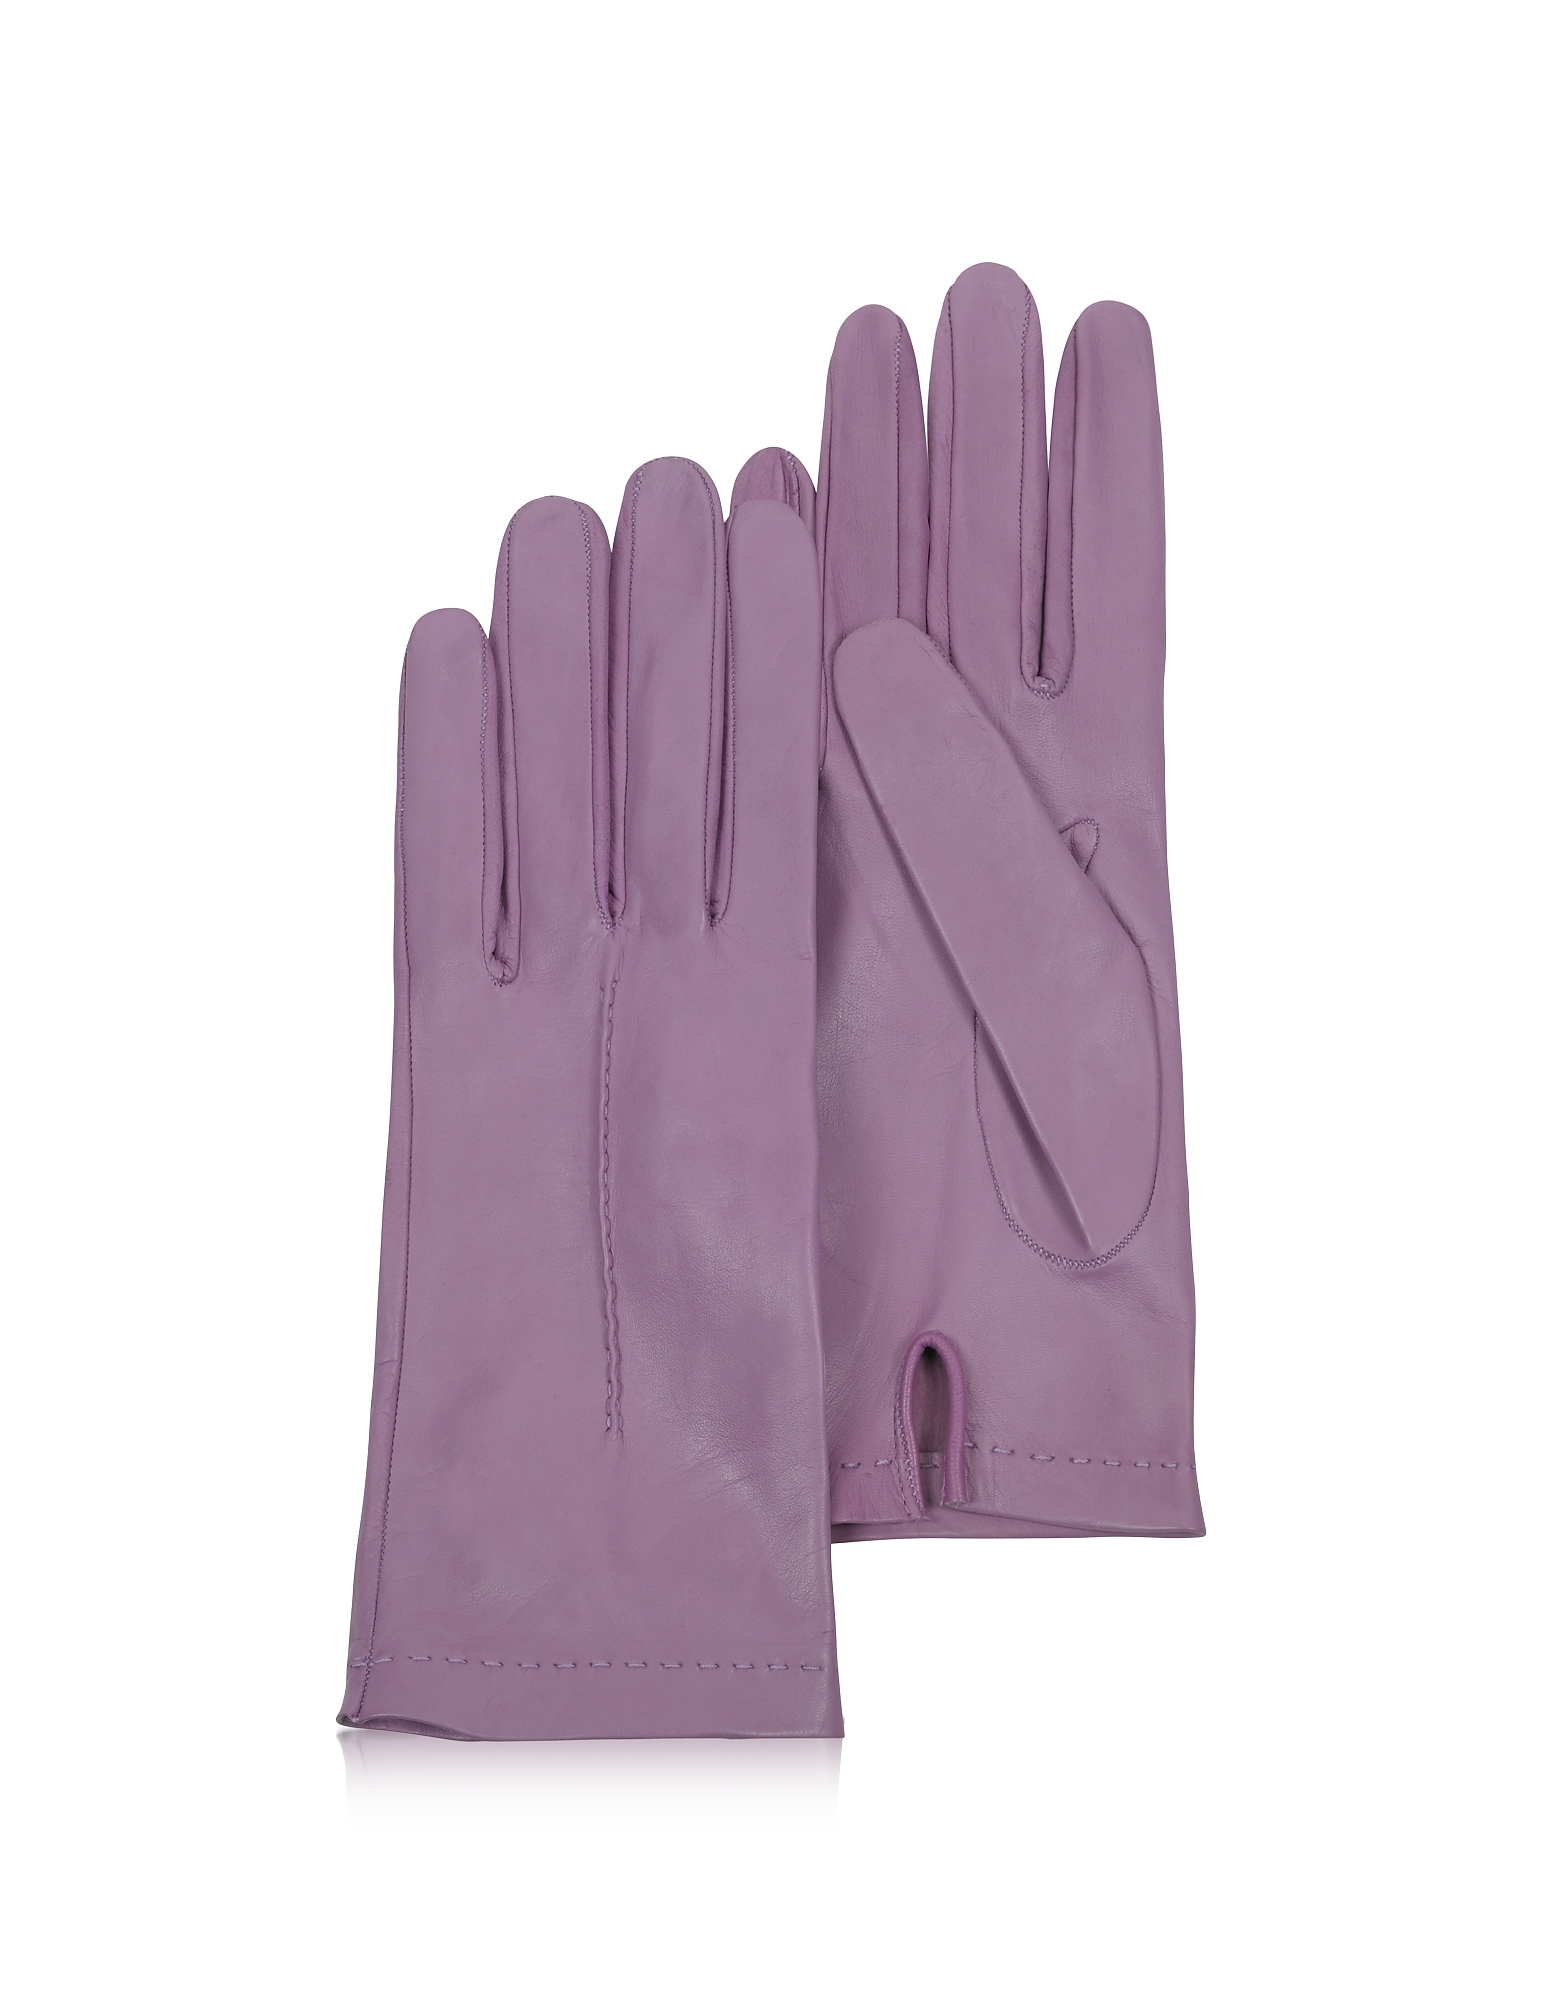 Forzieri Women's Gloves, Women's Purple Unlined Italian Leather Gloves